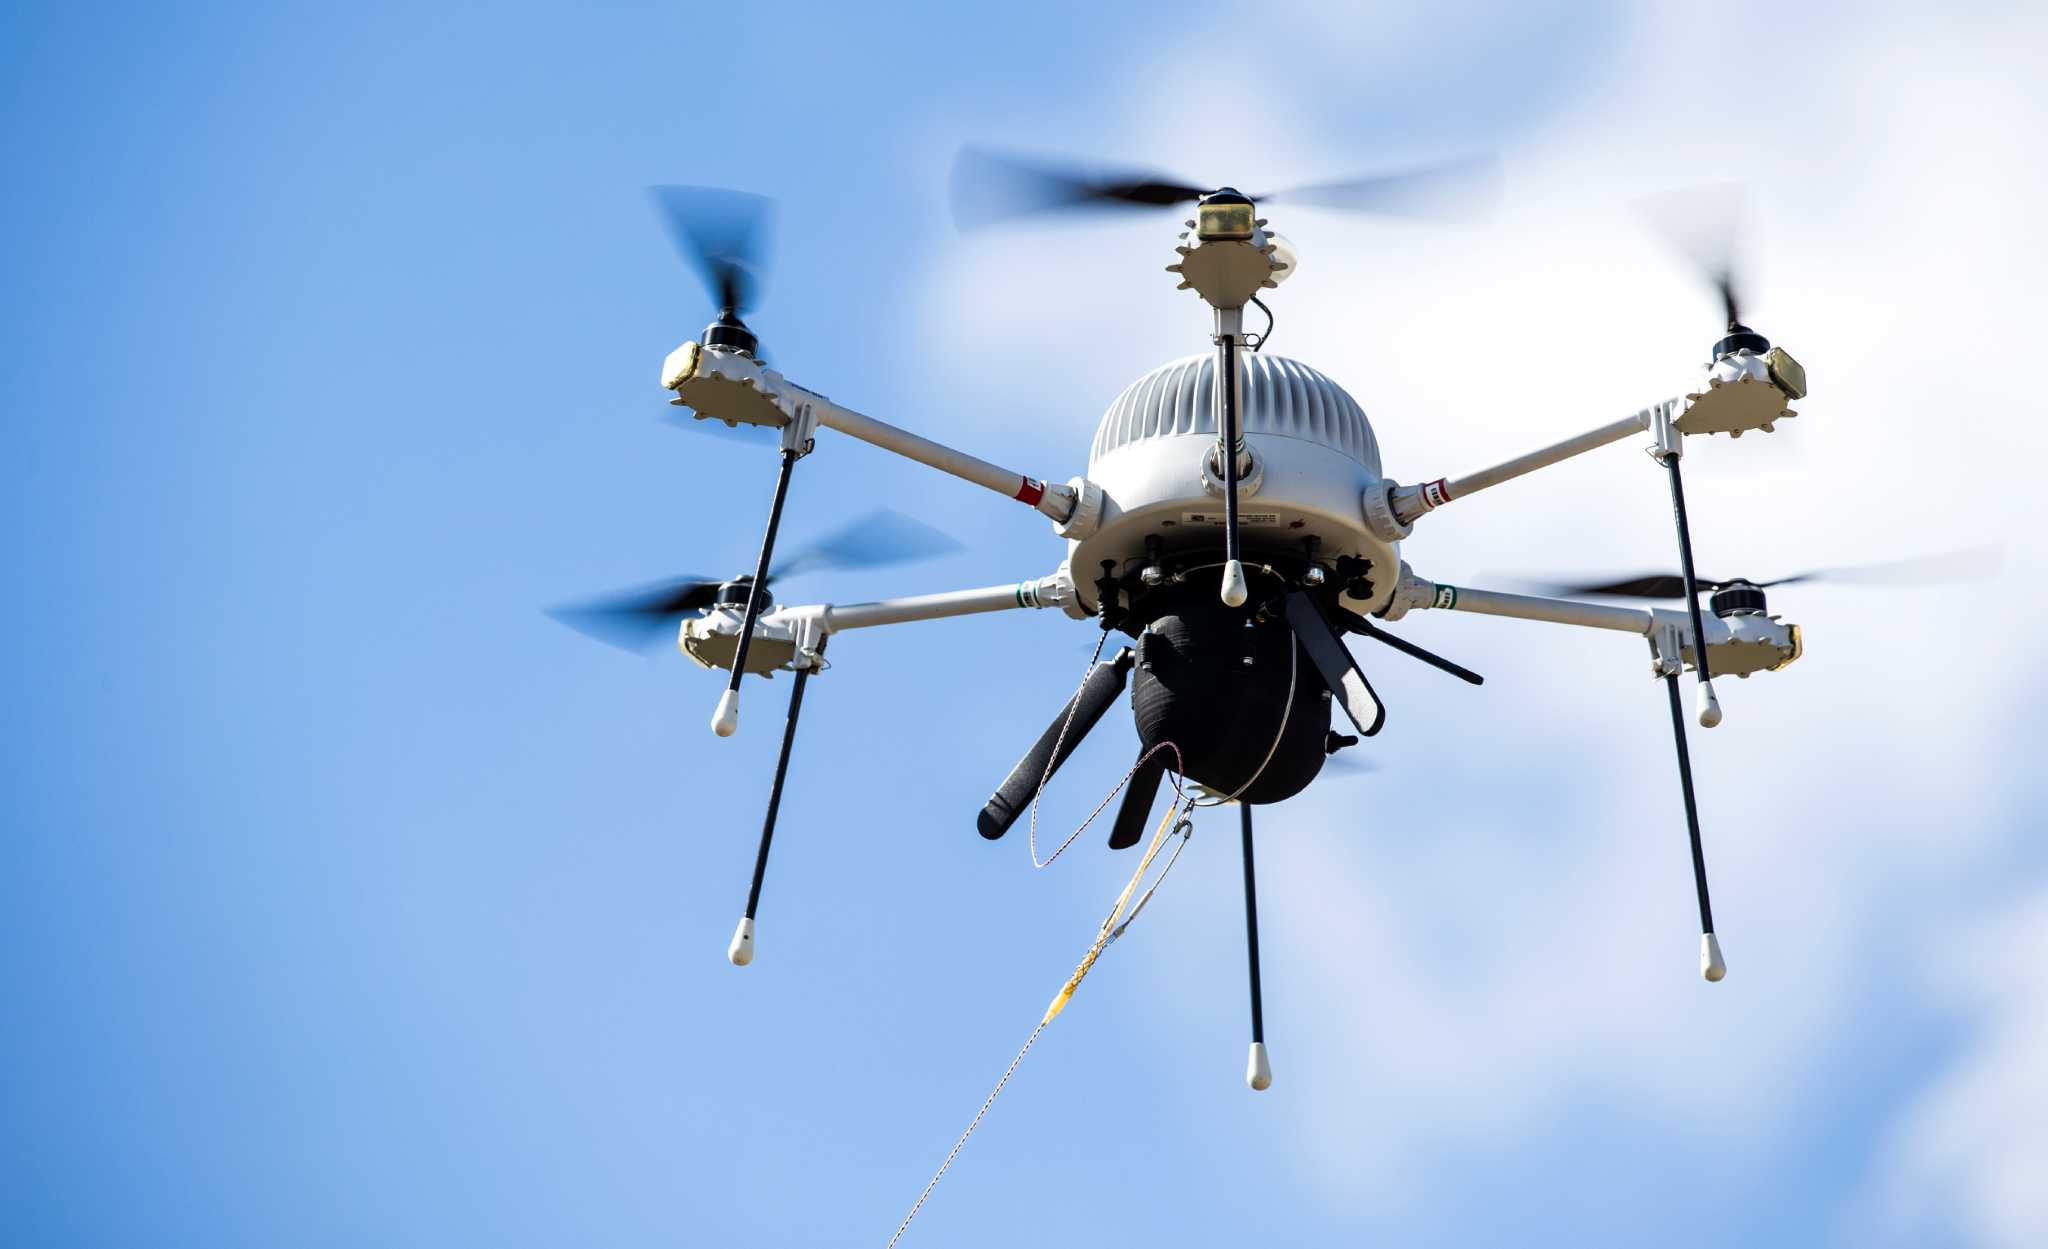 apple said to fly drones to improve maps data and catch